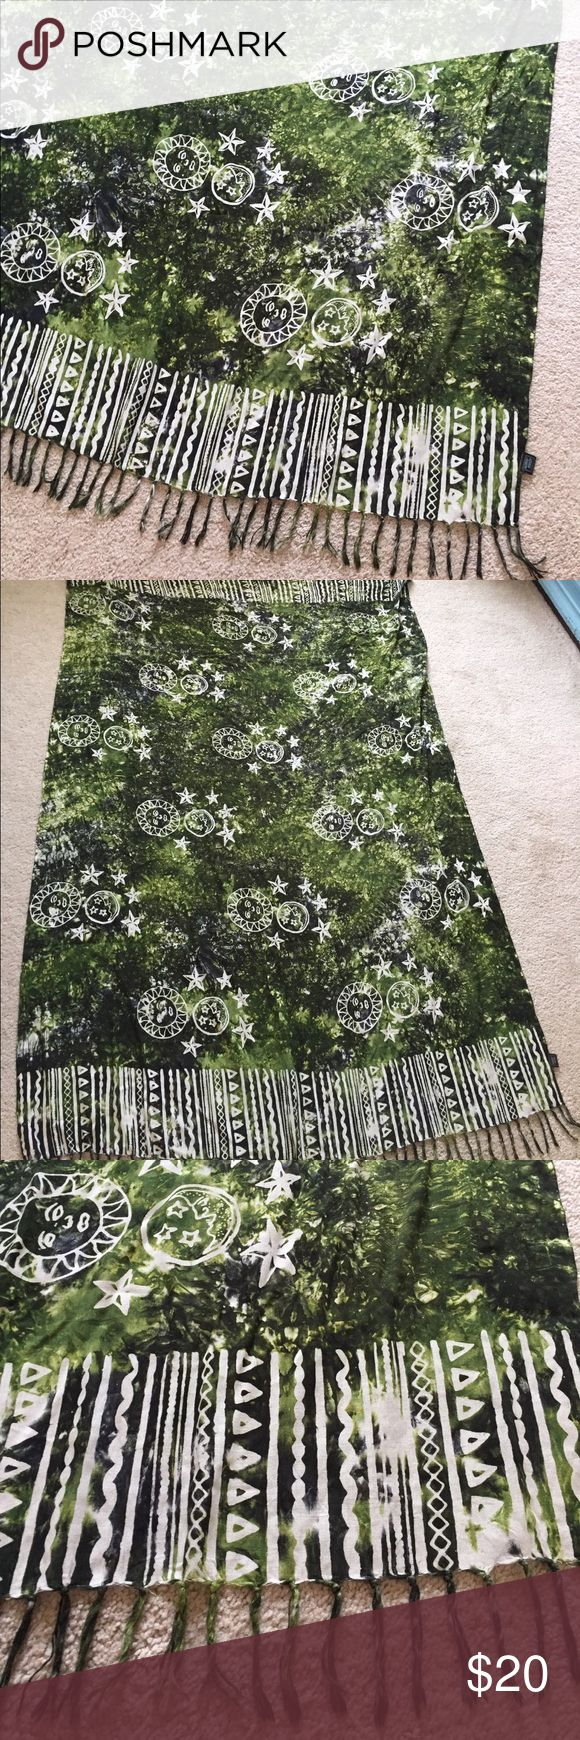 Earthy Sun and Moon Beach Sarong Love this beach Sarong! It is green and white. The edges have fringe and stripes. The design is the sun, moon, and all of the stars! Perfect coverup for a beach day or to lay on in the sand 😍 Swim Sarongs